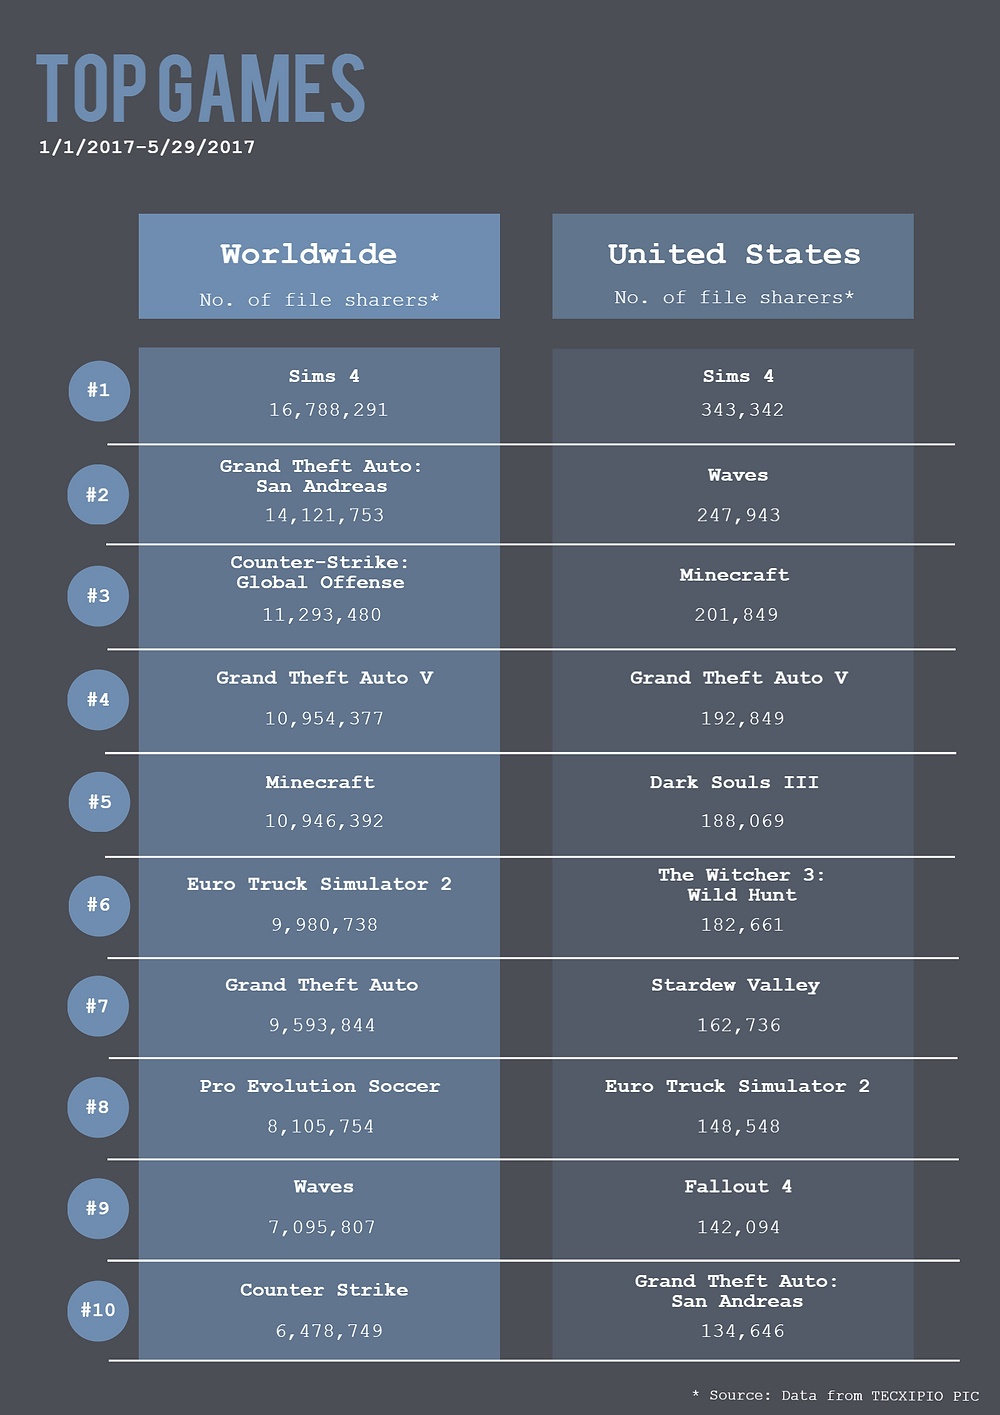 TECXIPIO infographic. The top ten games worldwide in comparison with the top ten games in the United States by number of P2P user